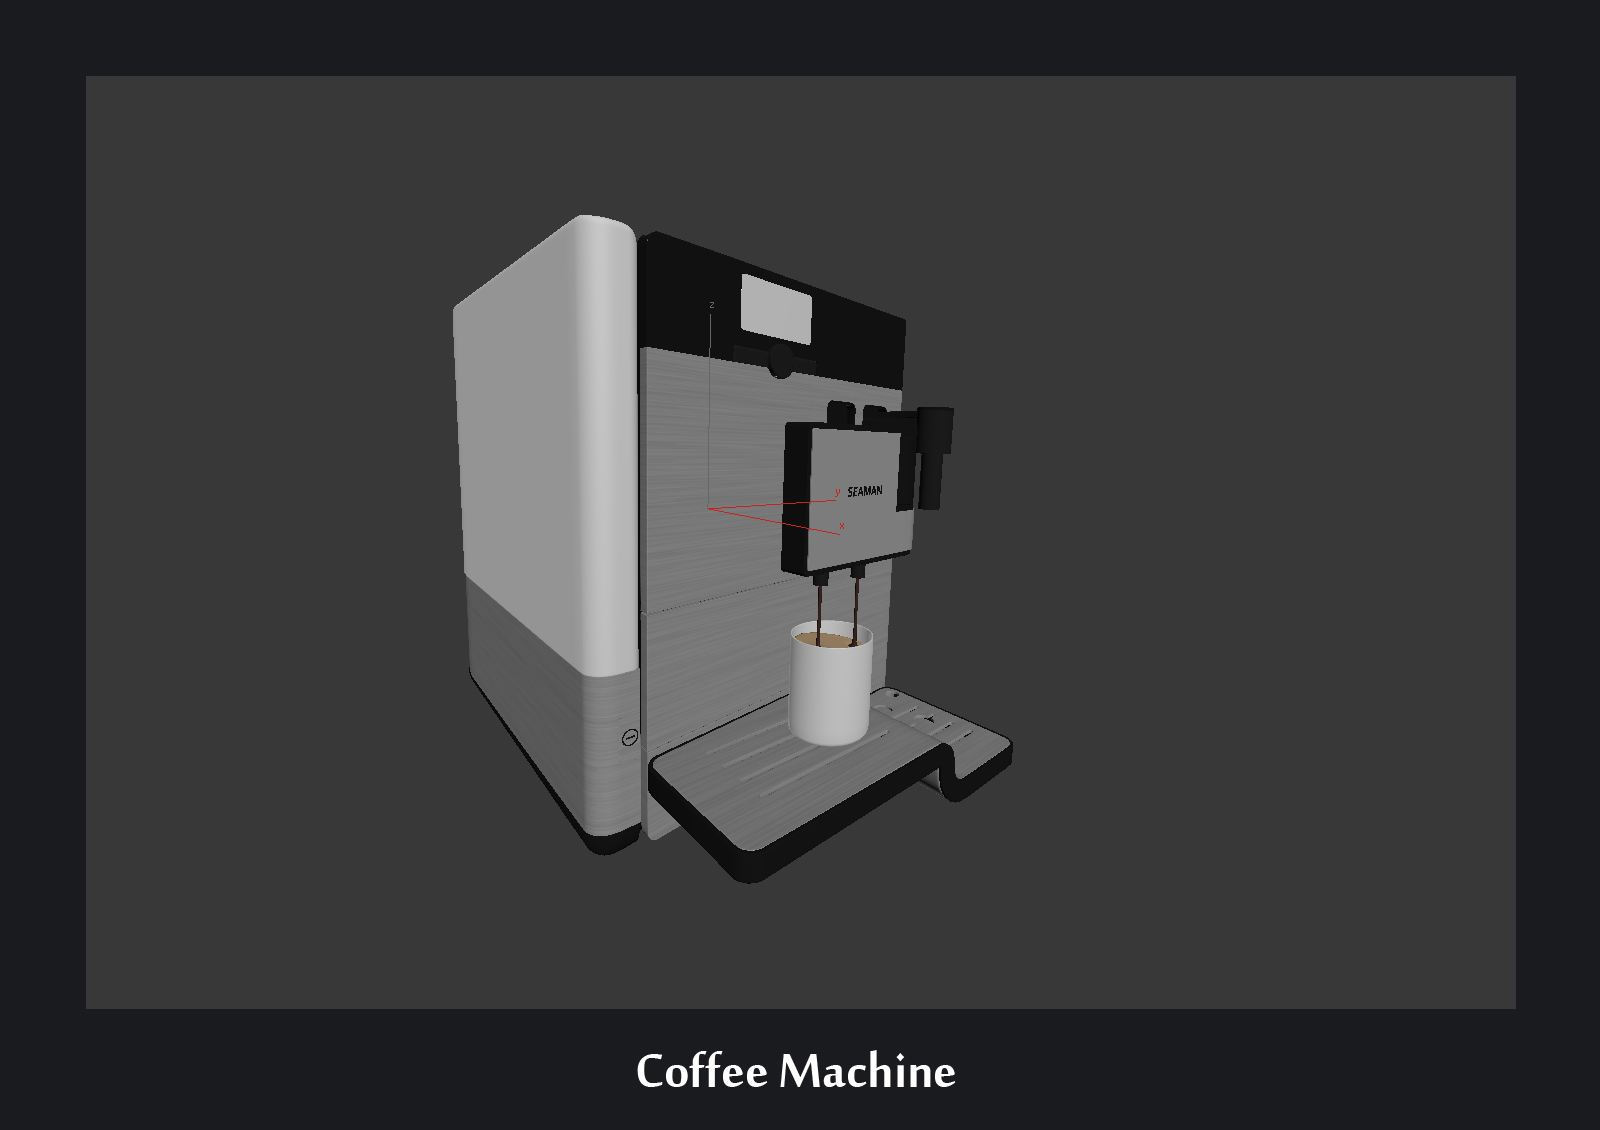 010_coffee_machine_evermotion_046.jpg